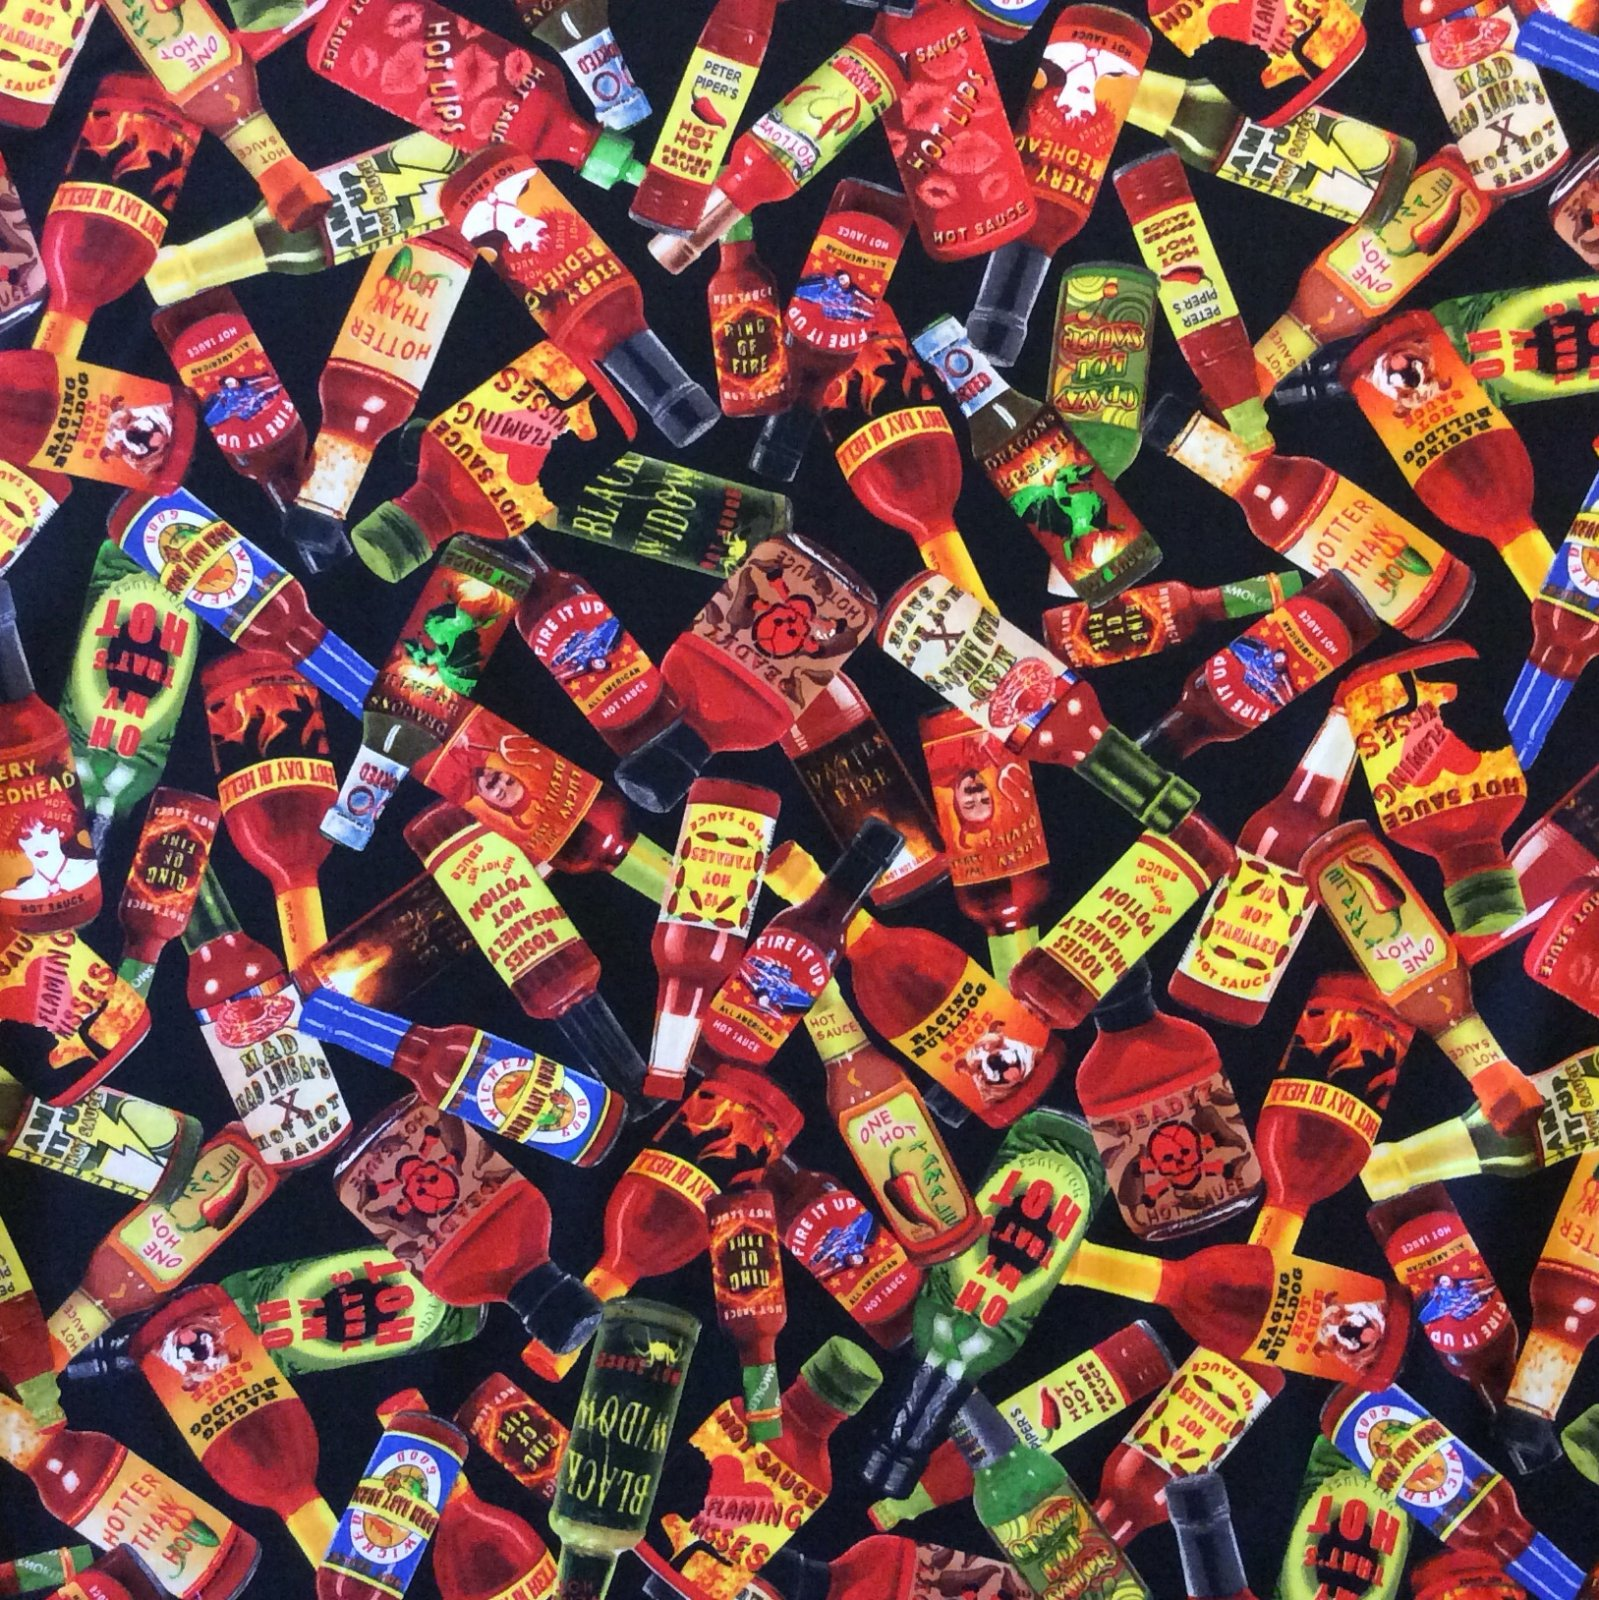 Md270 Hot Sauce Tabasco Chili Spicy Condiment Pepper Quilt